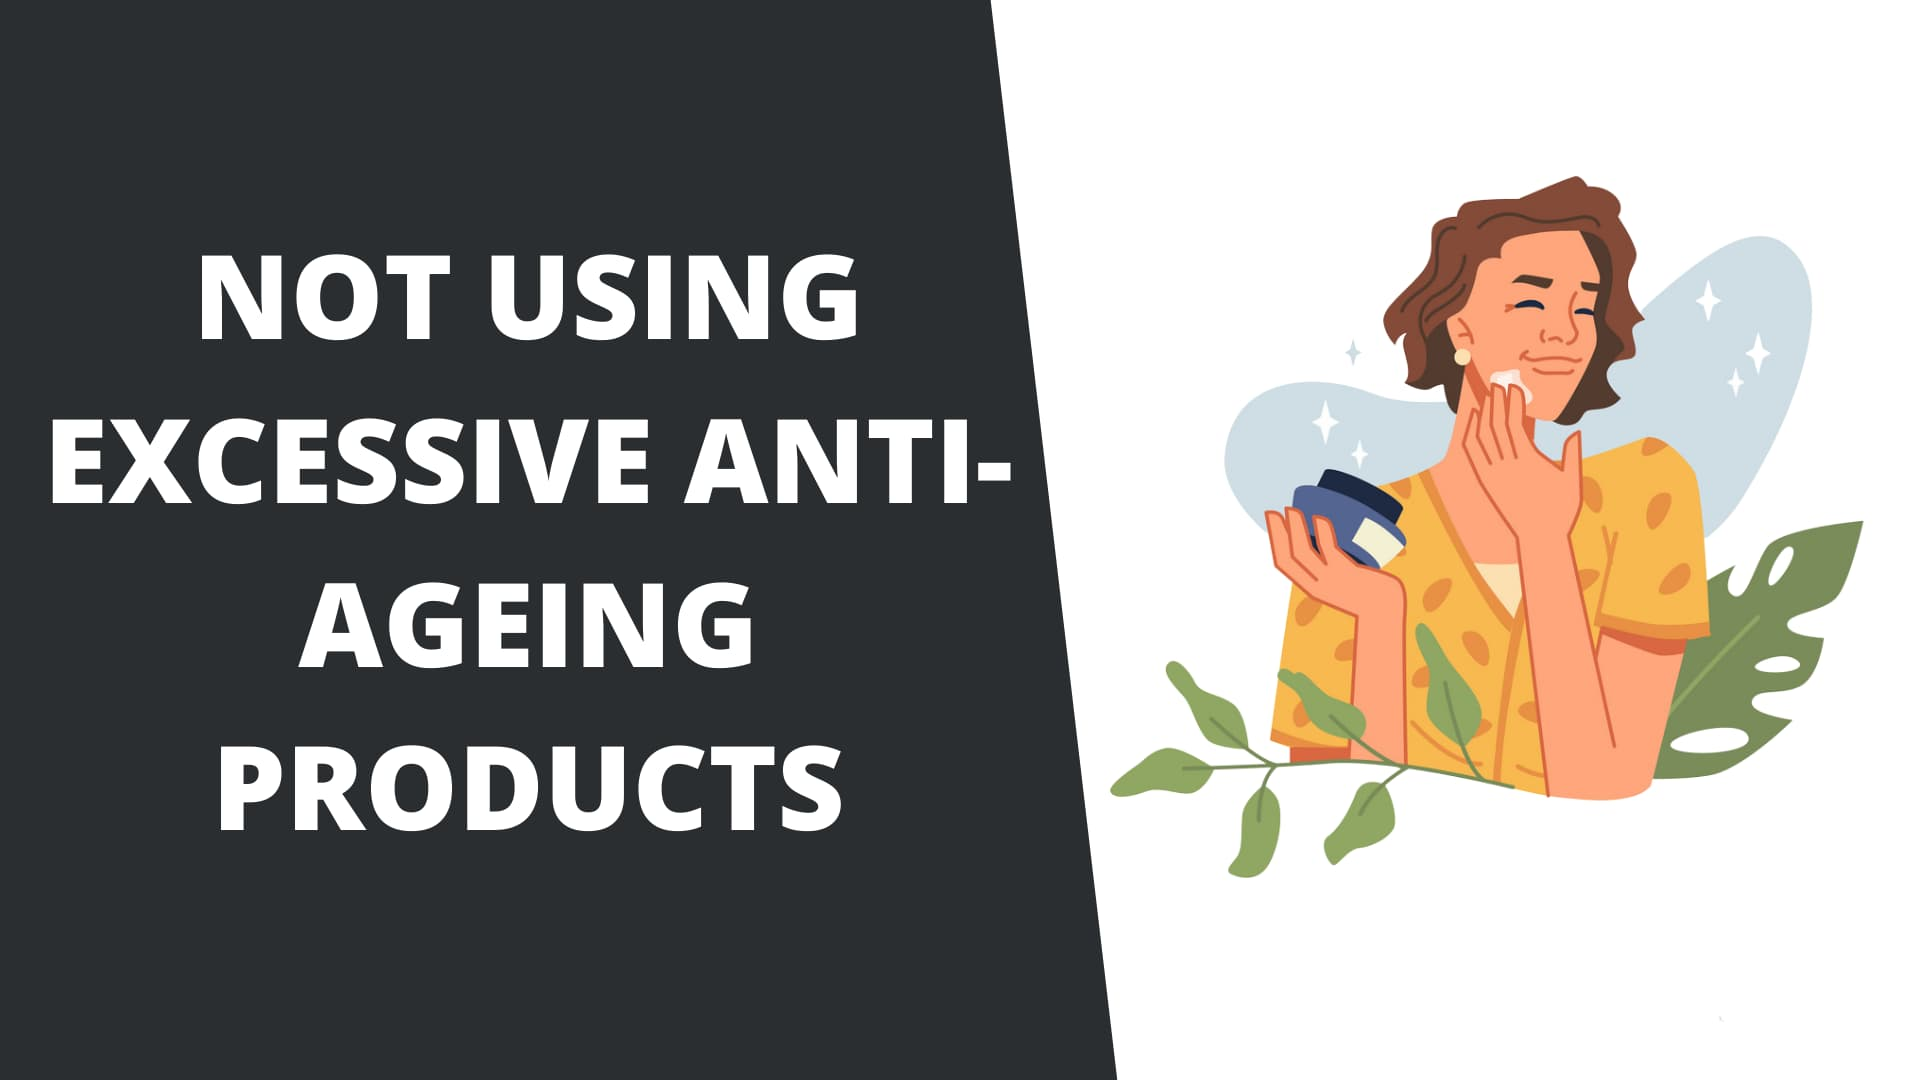 Not using excessive anti-ageing products